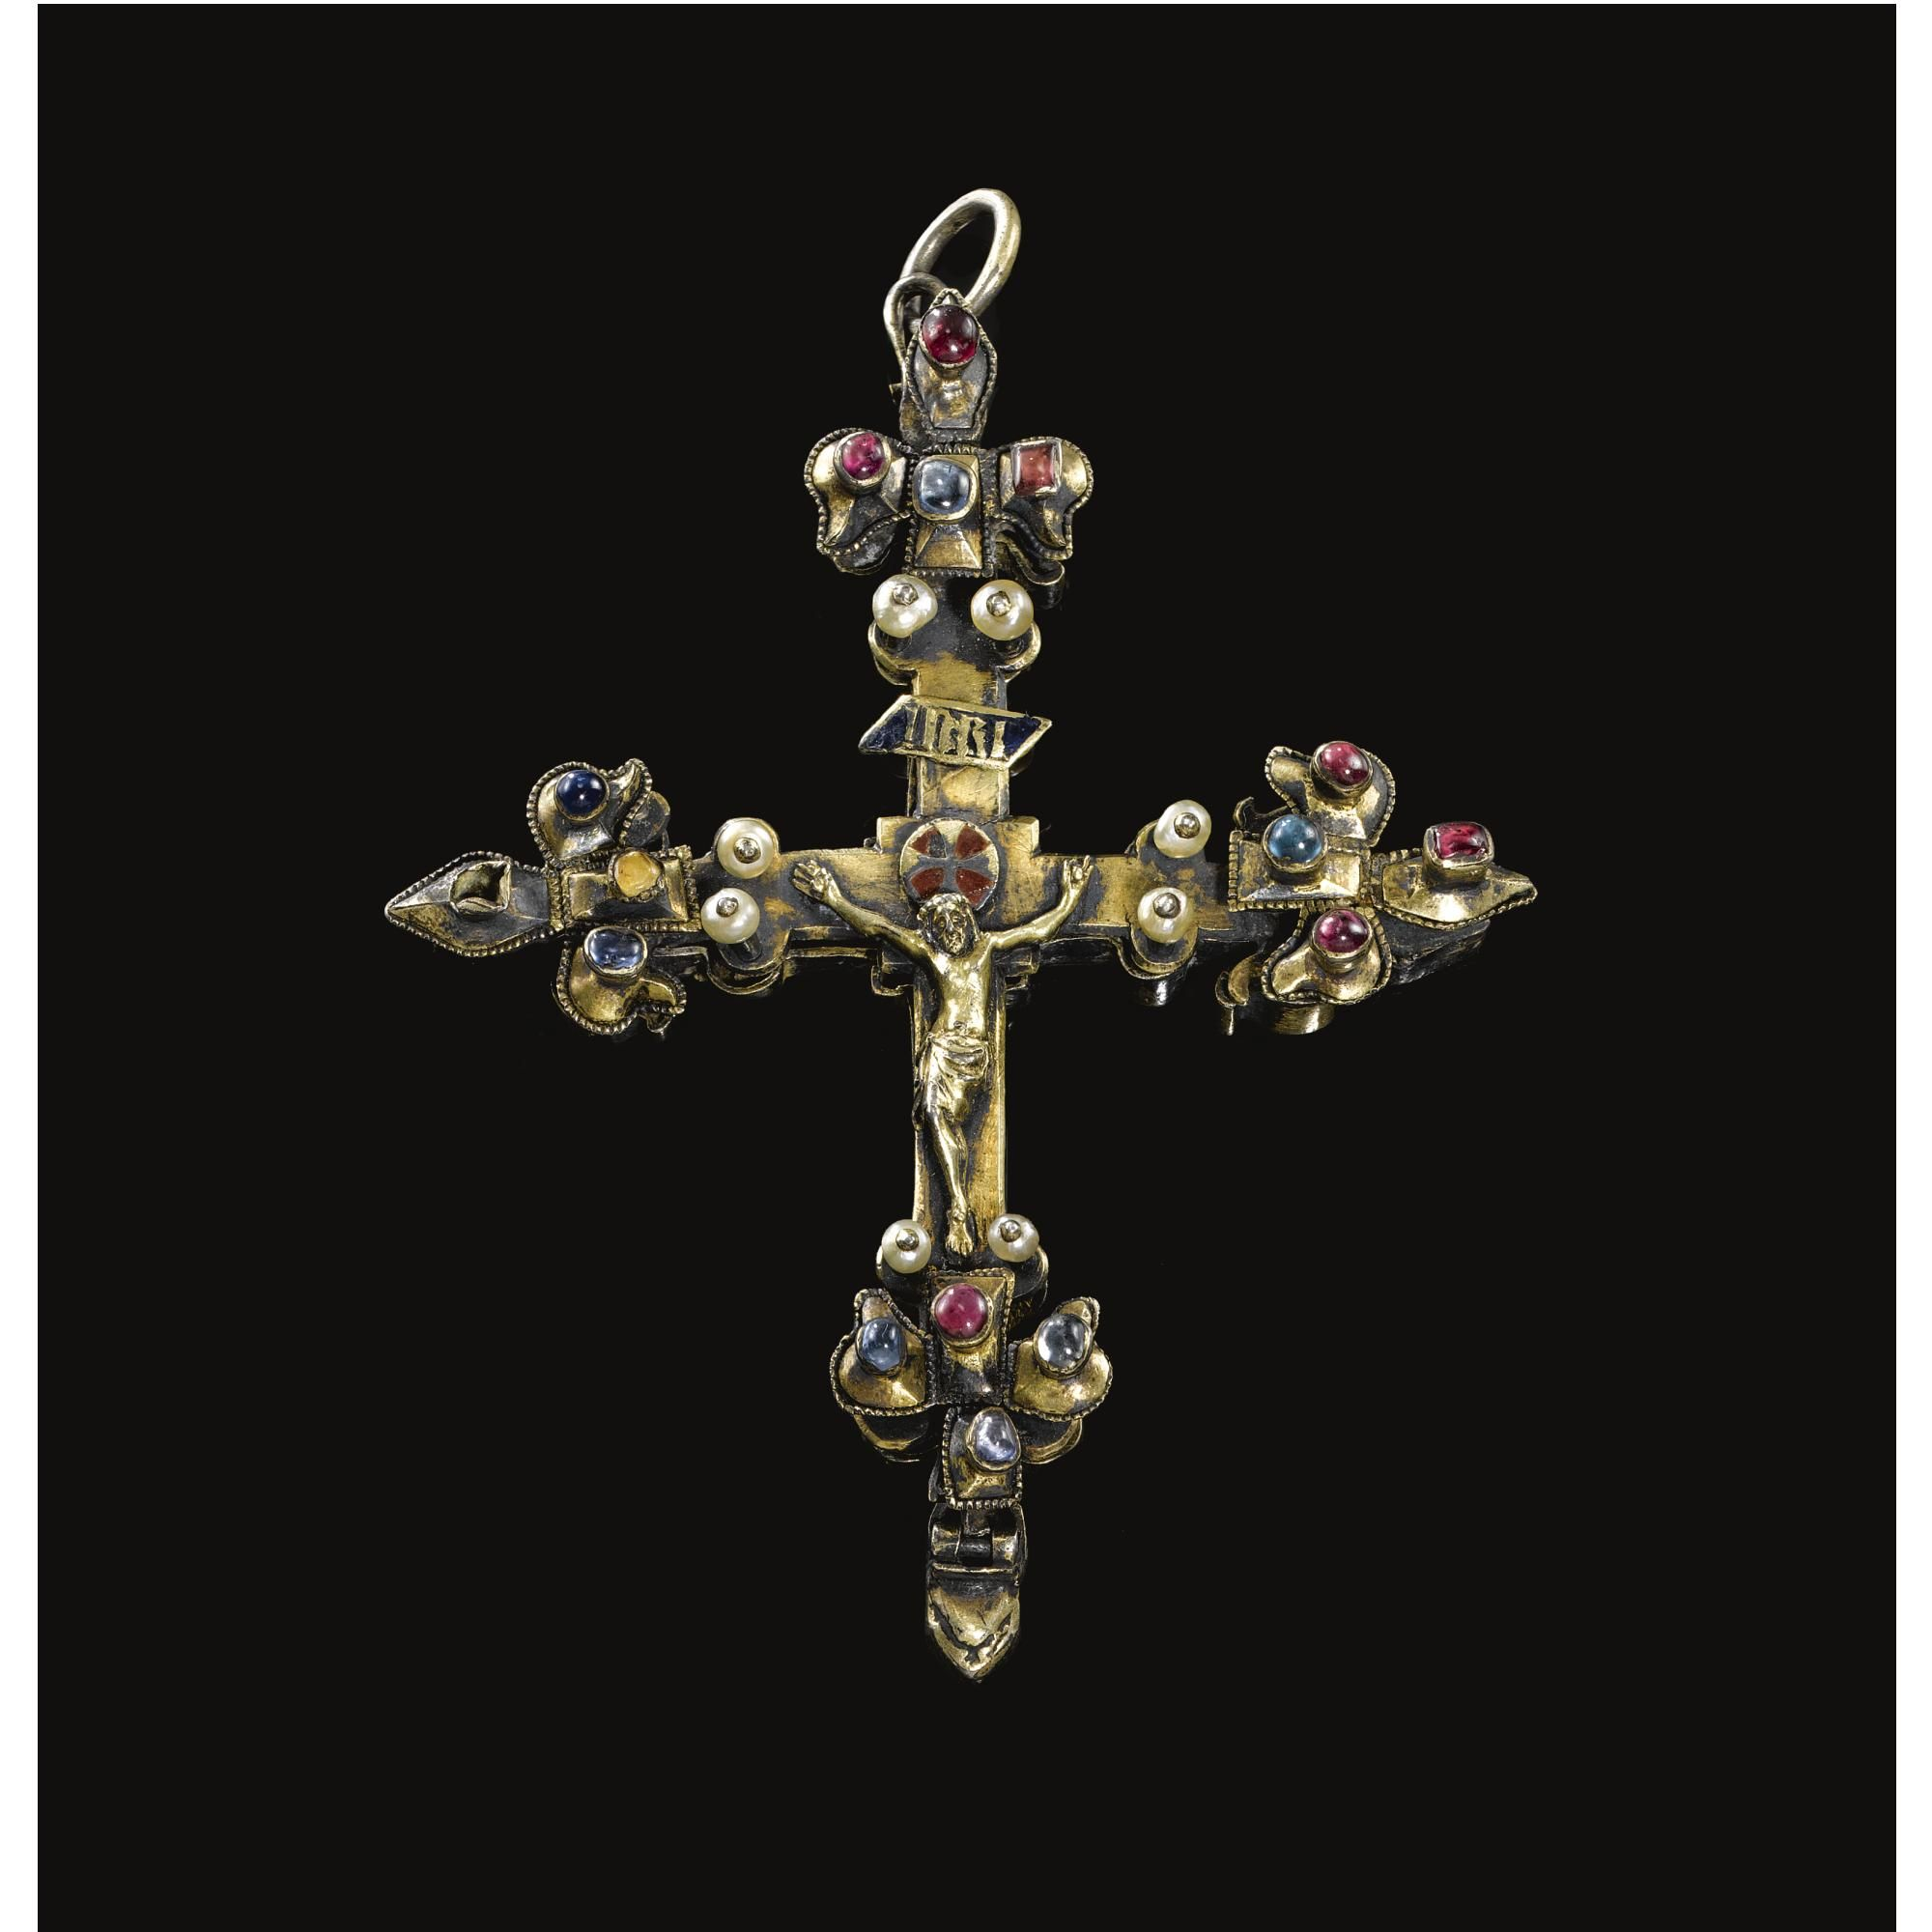 French second half 14th century pectoral cross silver enamelled french second half century pectoral cross silver enamelled and engraved on reverse with the lamb of god and the symbols of the four evangelists biocorpaavc Images